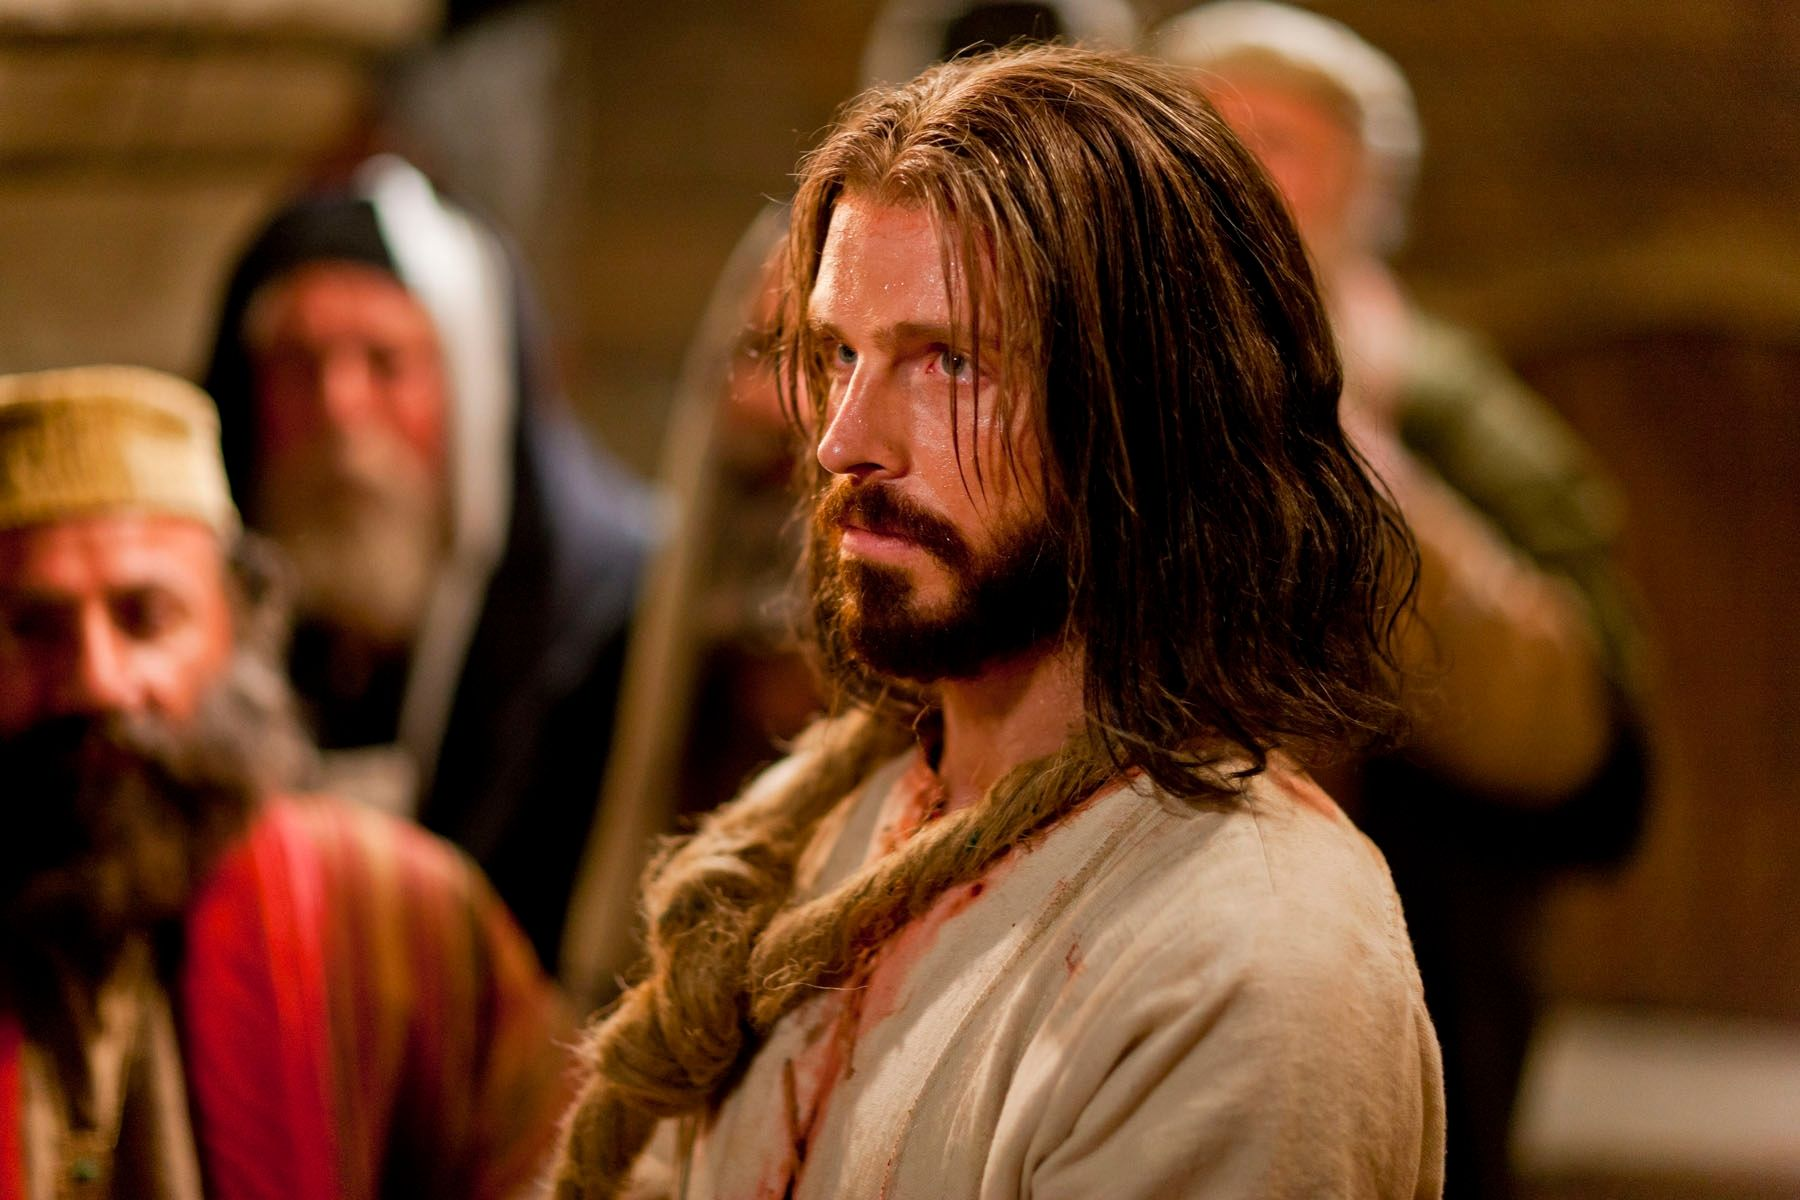 Christ is tried before Caiaphas.